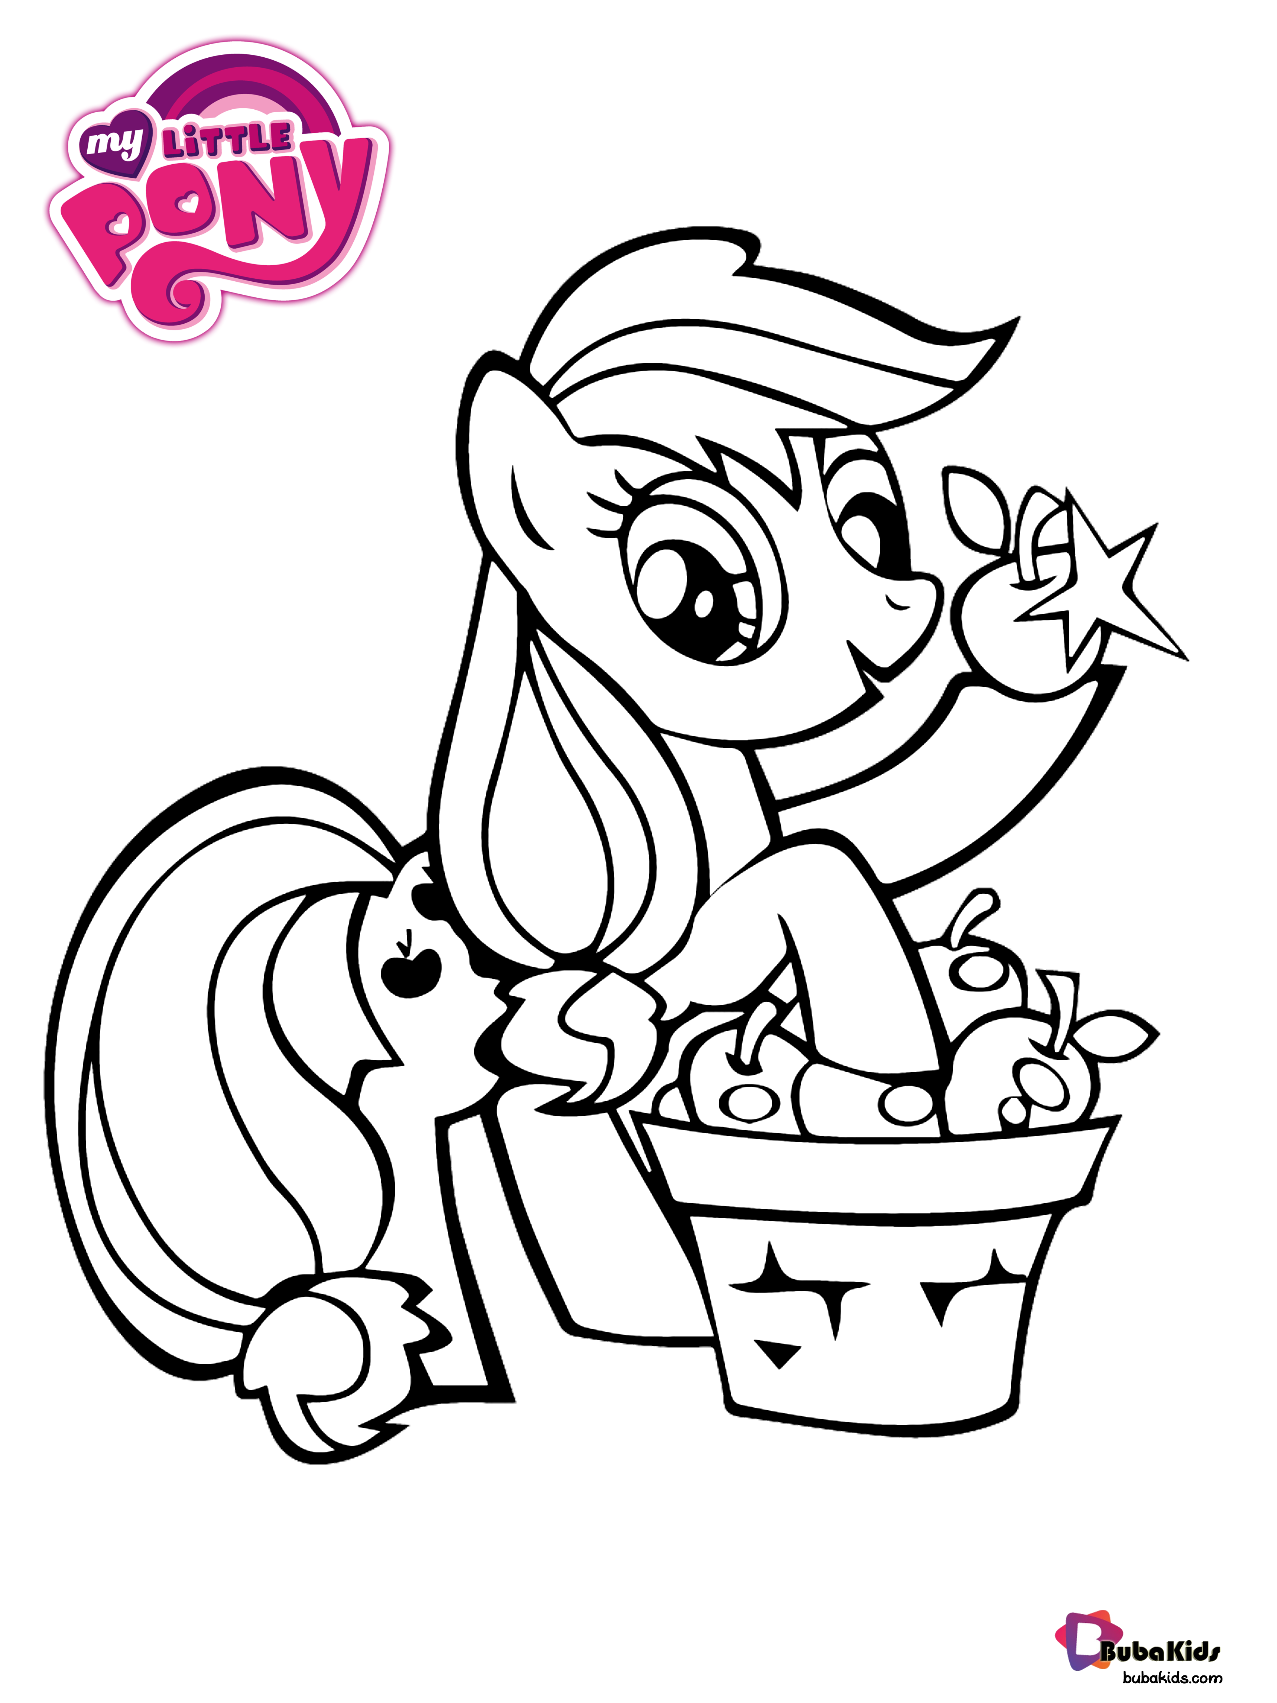 My Little Pony free coloring page for kids. Wallpaper